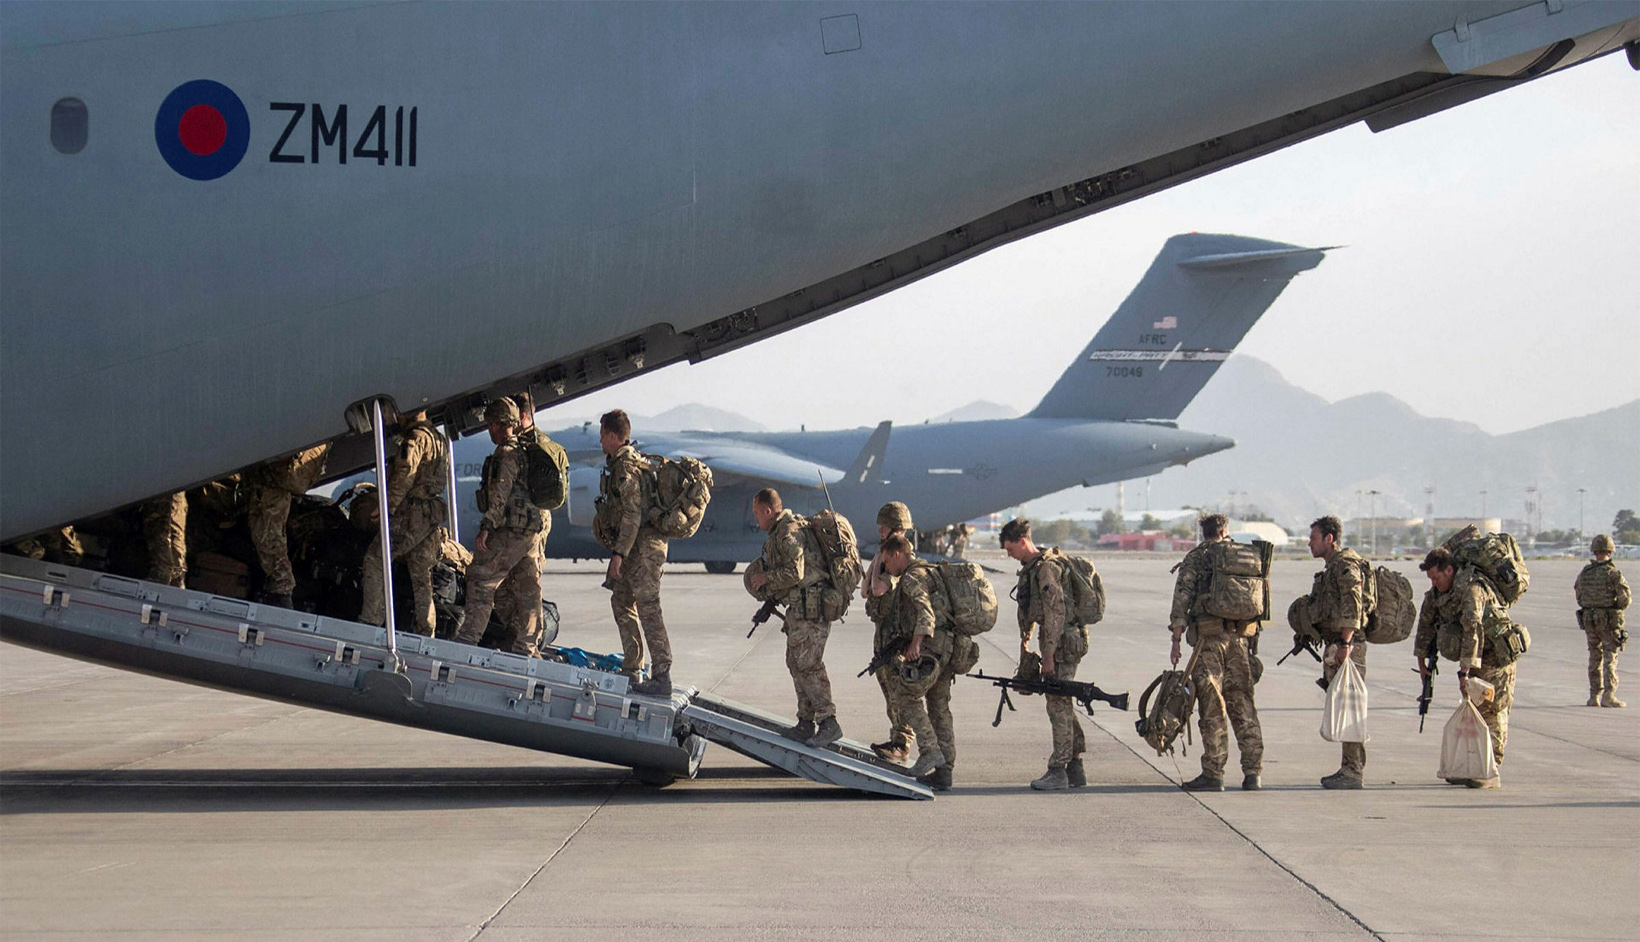 Another attack at Kabul airport highly likely in 24-36 hours, warns Joe Biden